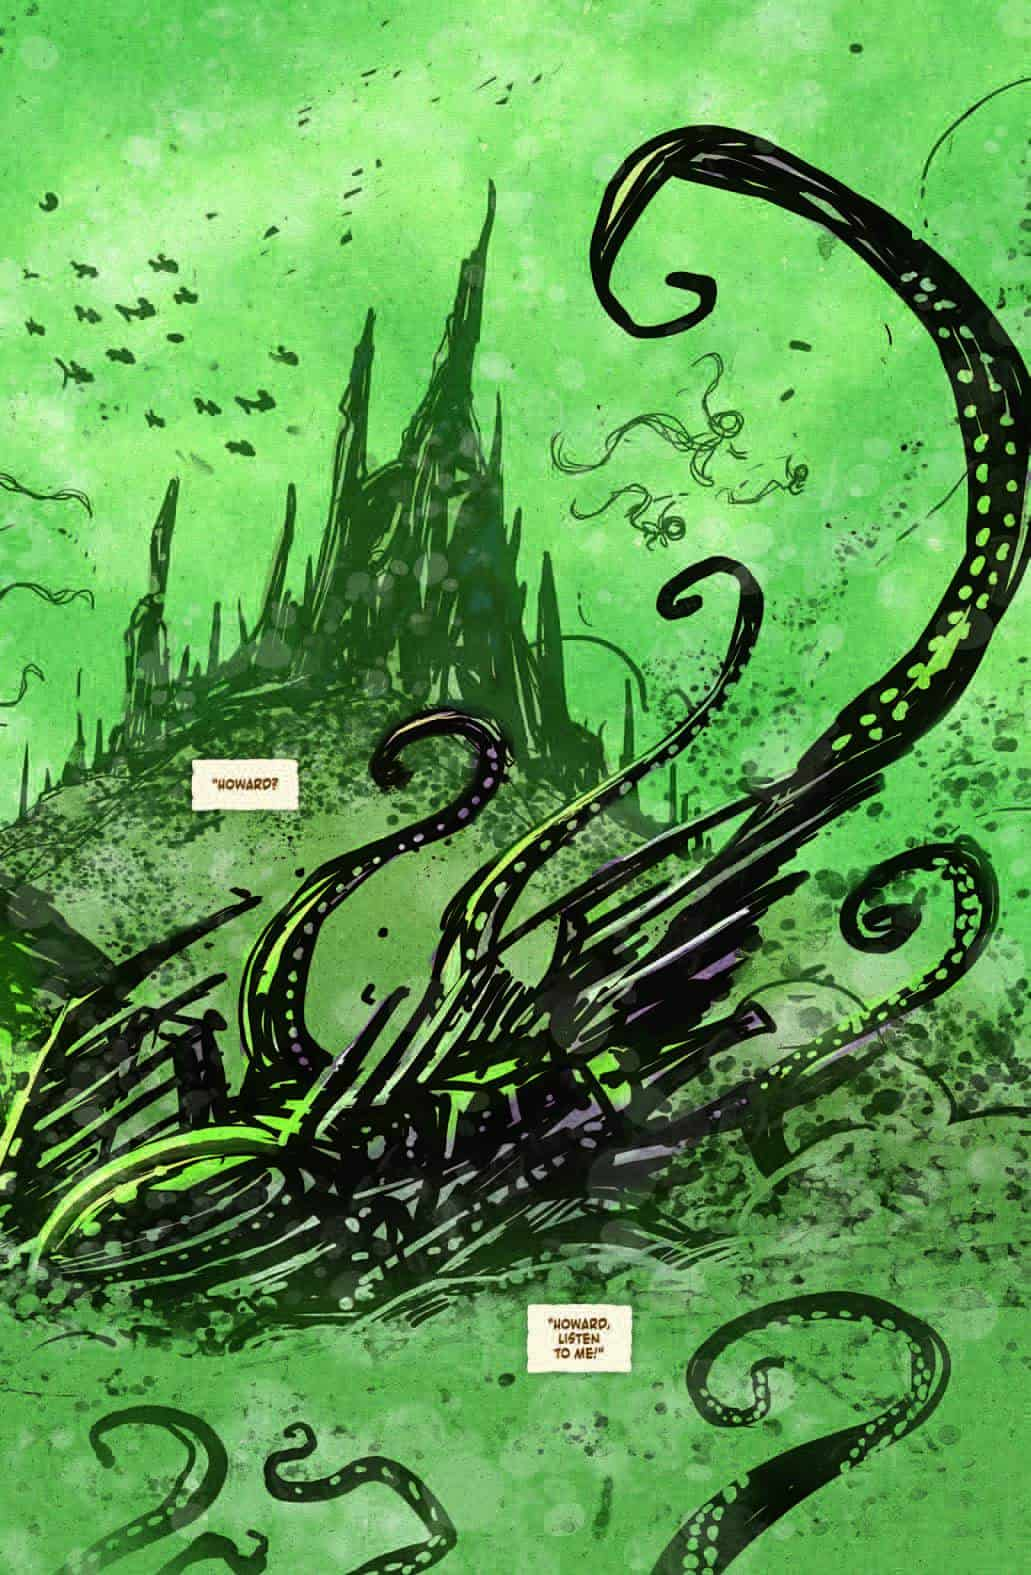 Howard-Lovecraft-and-the-Undersea-Kingdom-image-03